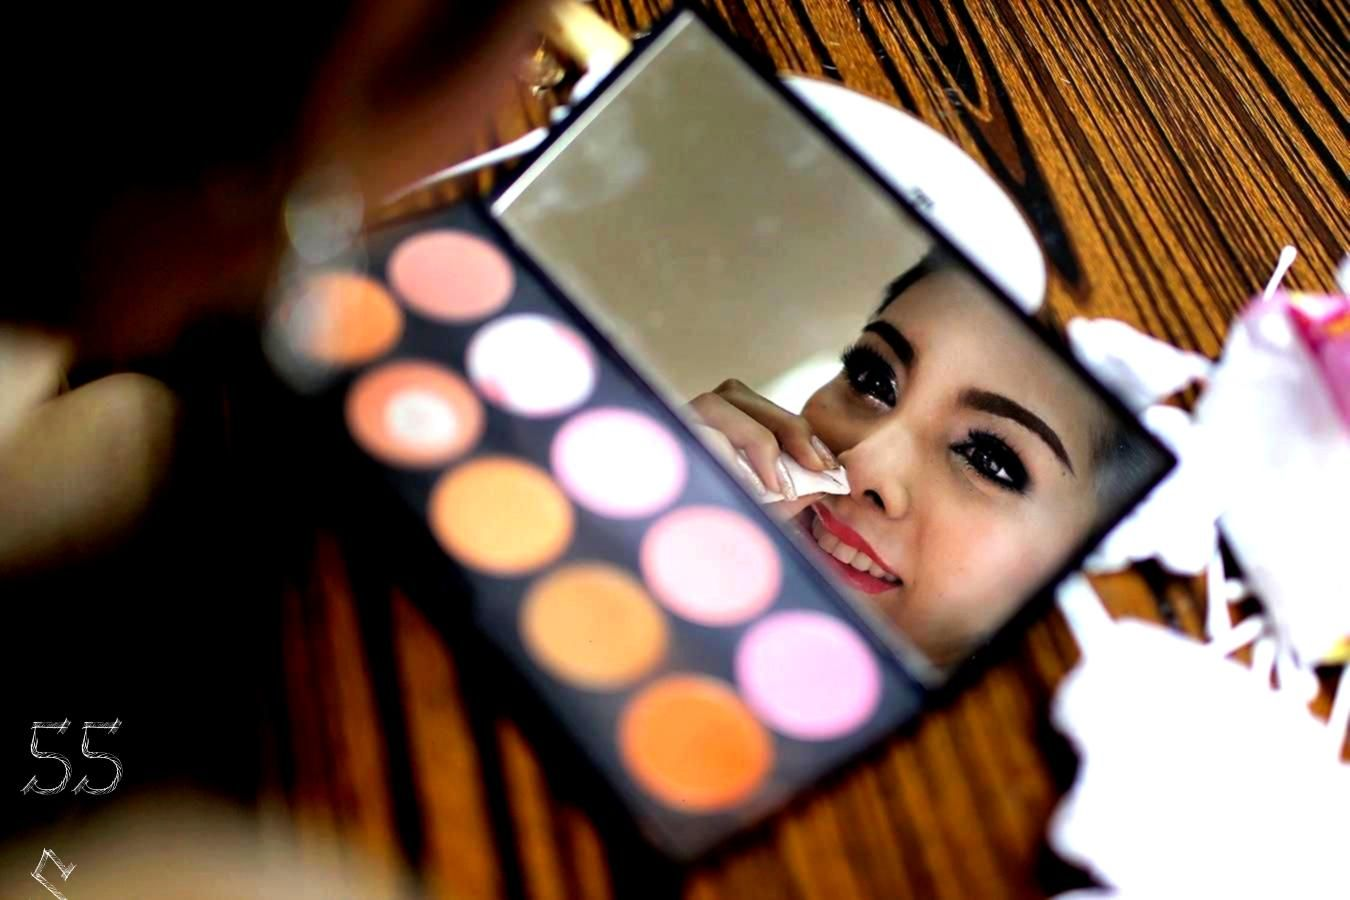 Stage Makeup Mistakes to Avoidavoid5 Stage Makeup Mistakes to Avoidavoid Eyebrow makeup Tips picture 3 20 Questions about My Character can be a great tool for young actor...